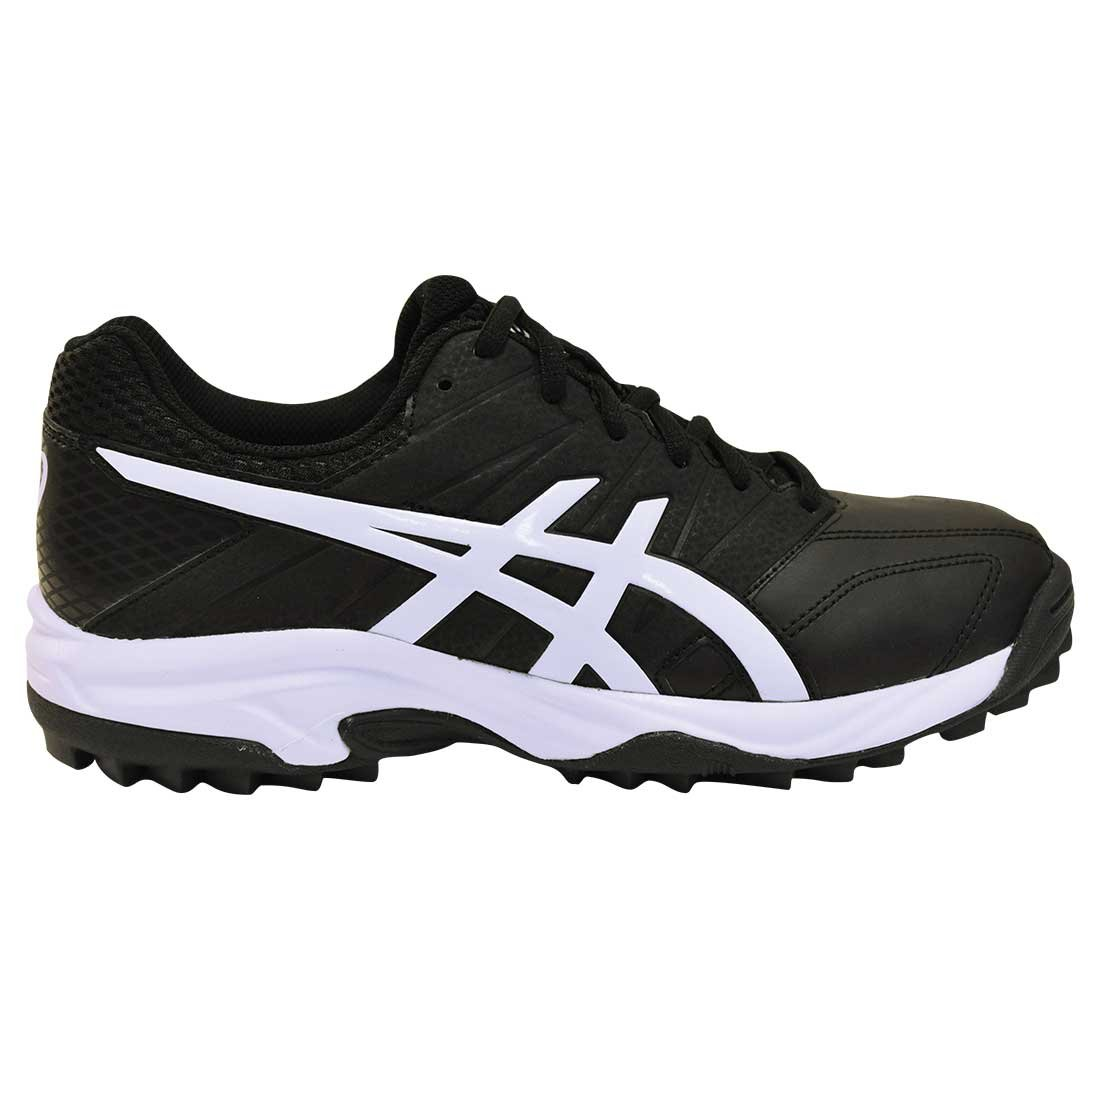 Asics Gel-Lethal MP7 Turf Shoe- Black - Women's SIZE 7